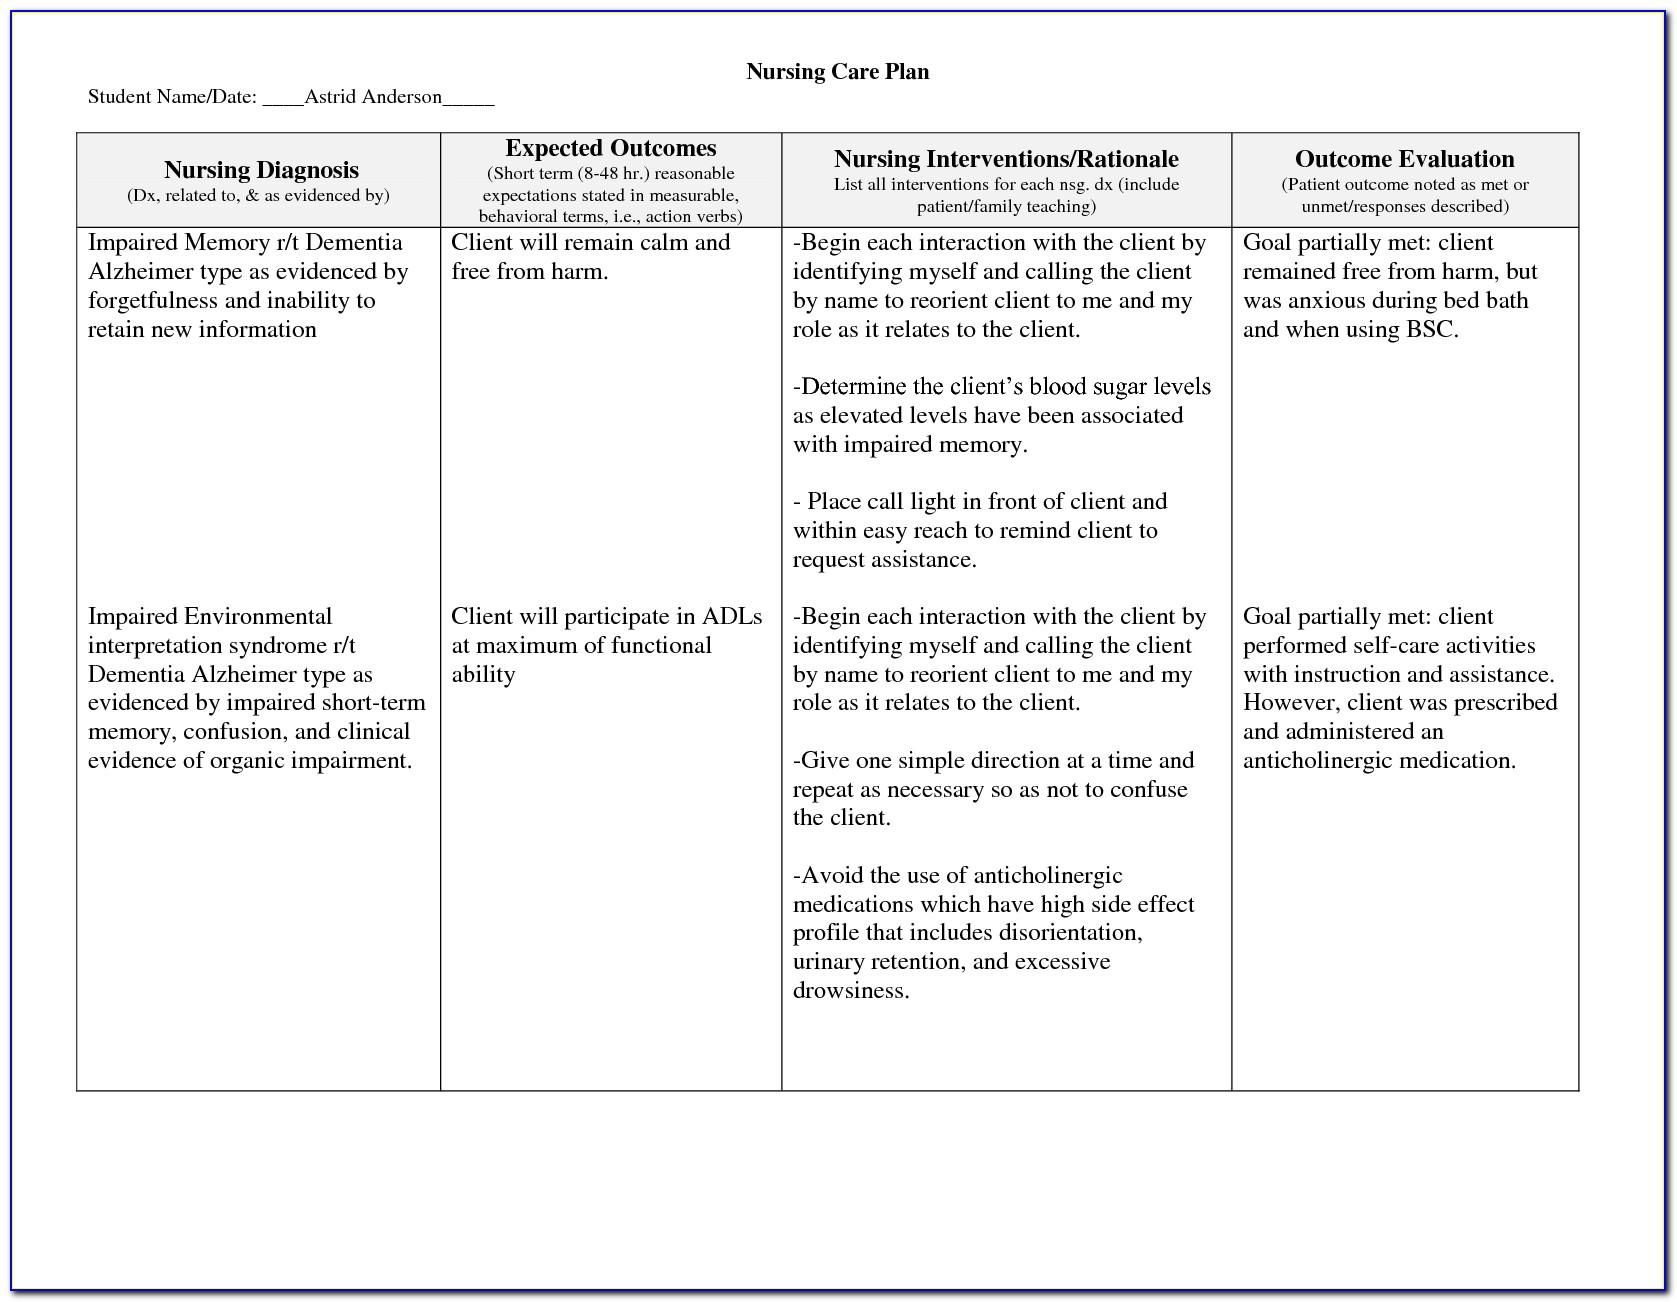 Nursing Care Plan Dementia Example